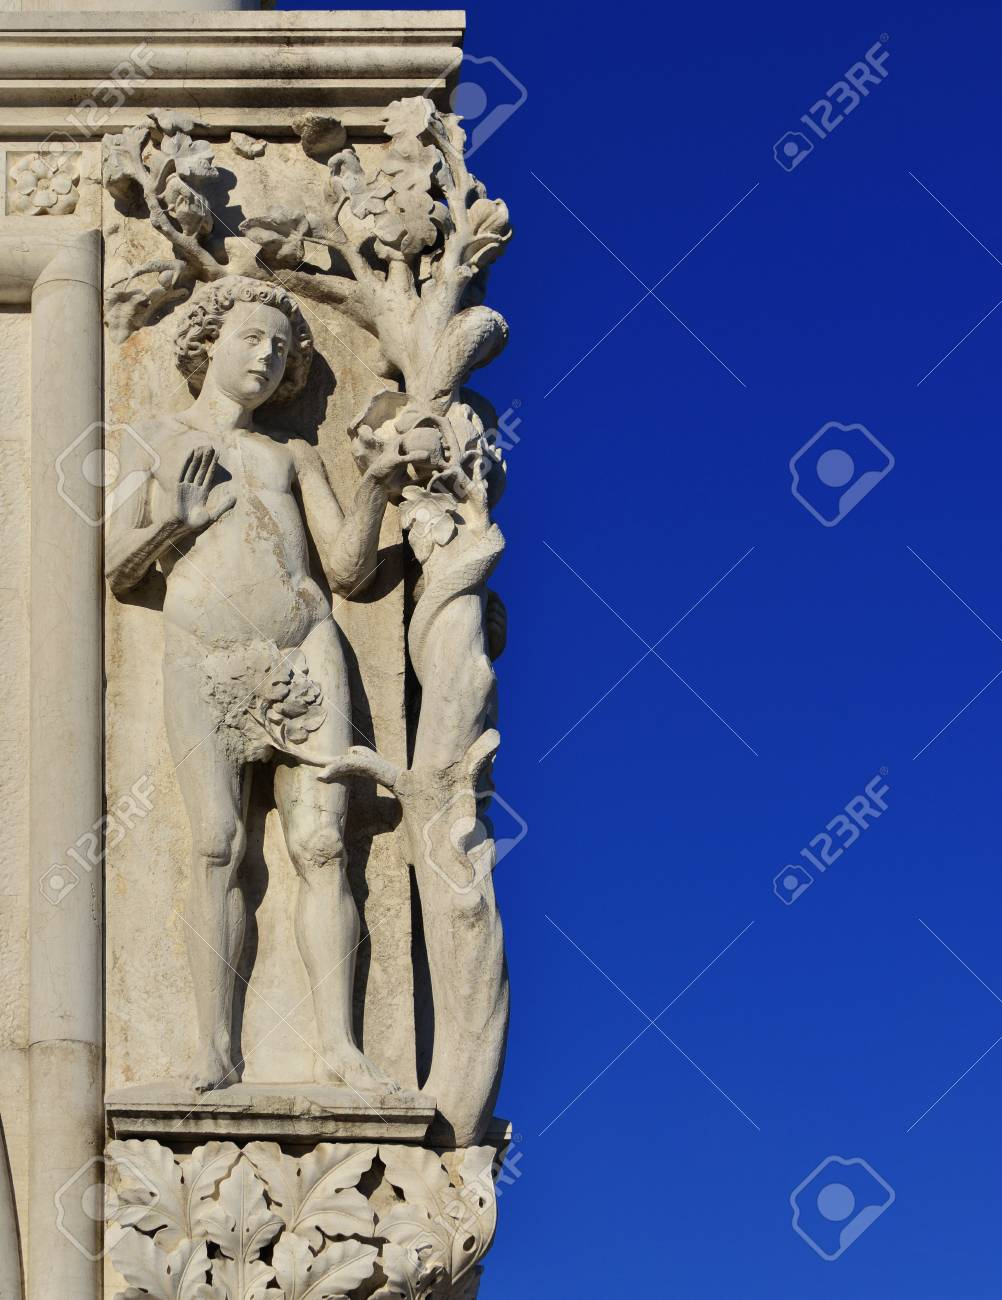 Adam the fist human in the Garden of Eden and the Original Sin, a medieval sculpture in Saint Mark Square, Venice (with copy space) Banque d'images - 84961990